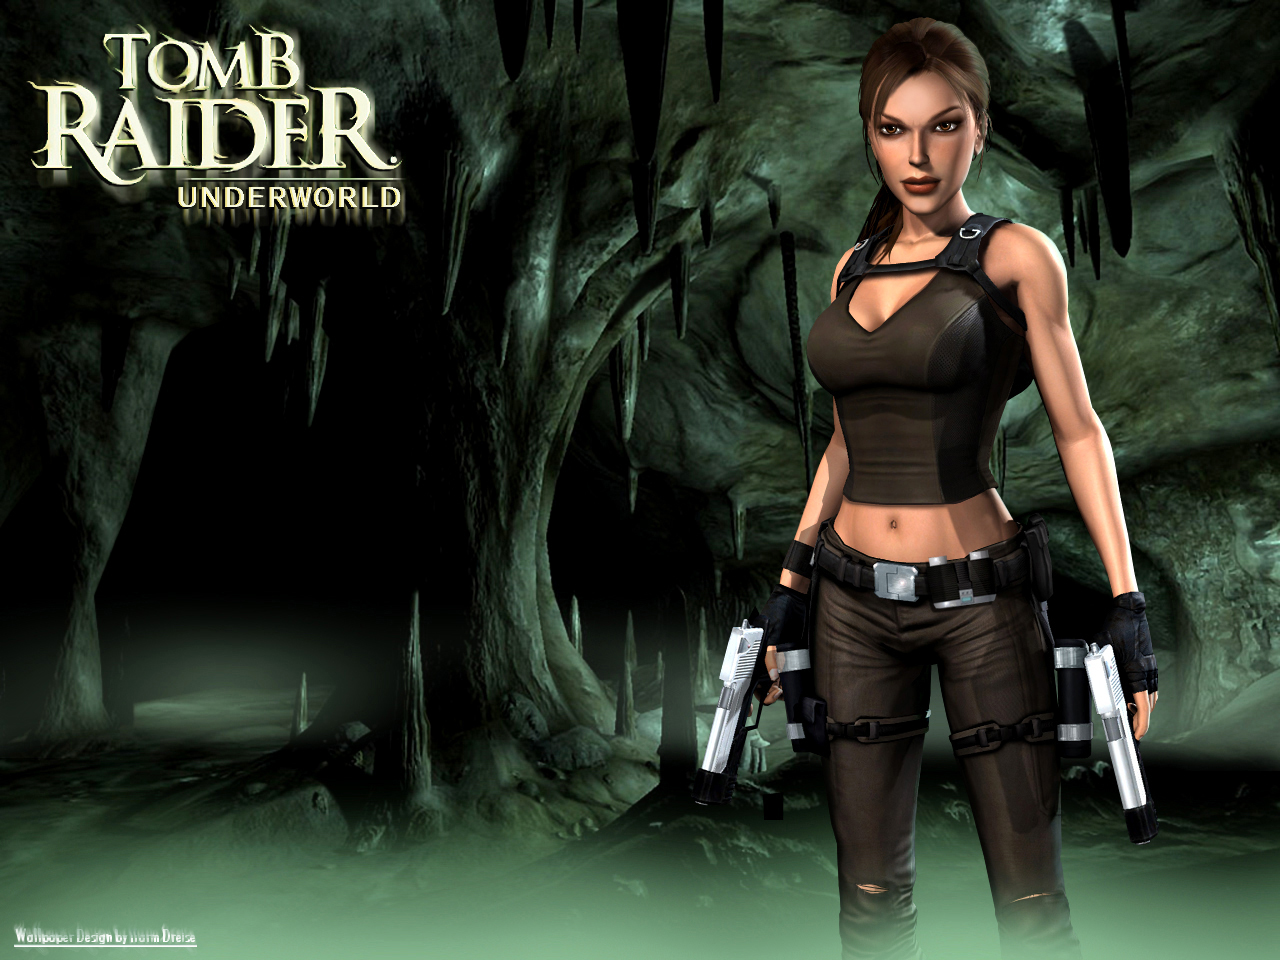 Tomb raider underworld porn pixs hentai photo